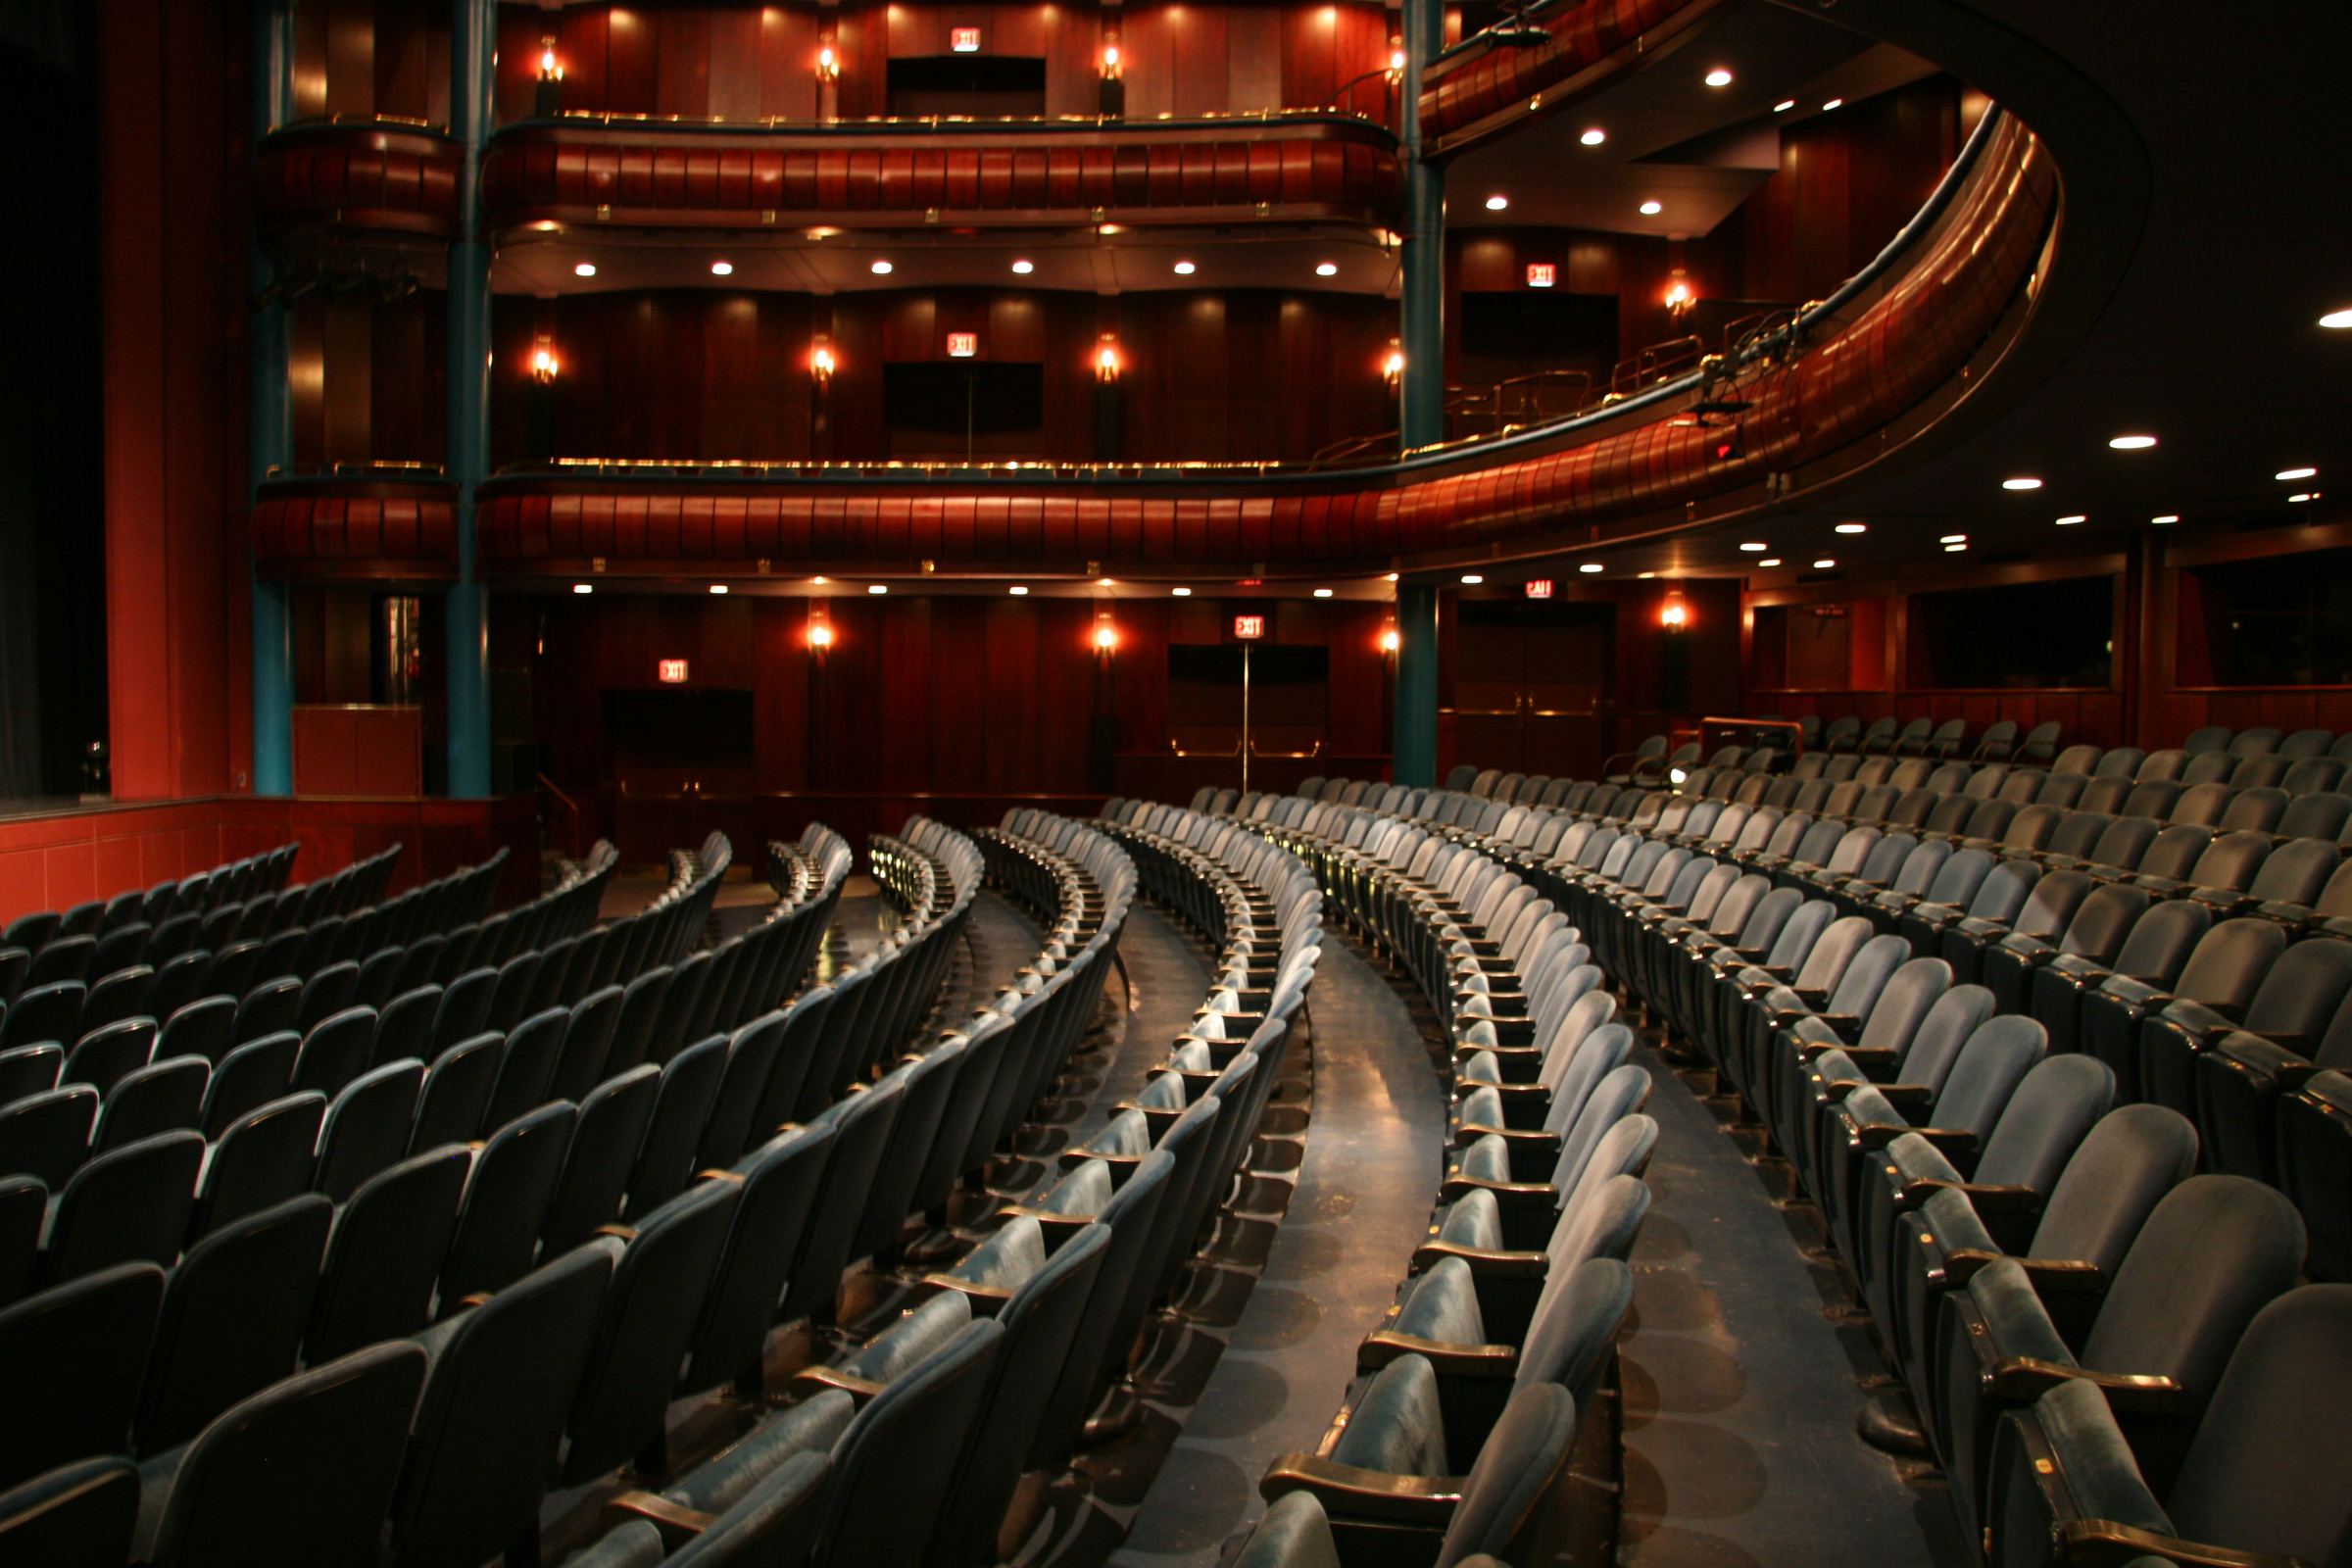 Newmark Theatre Photos Portland 5